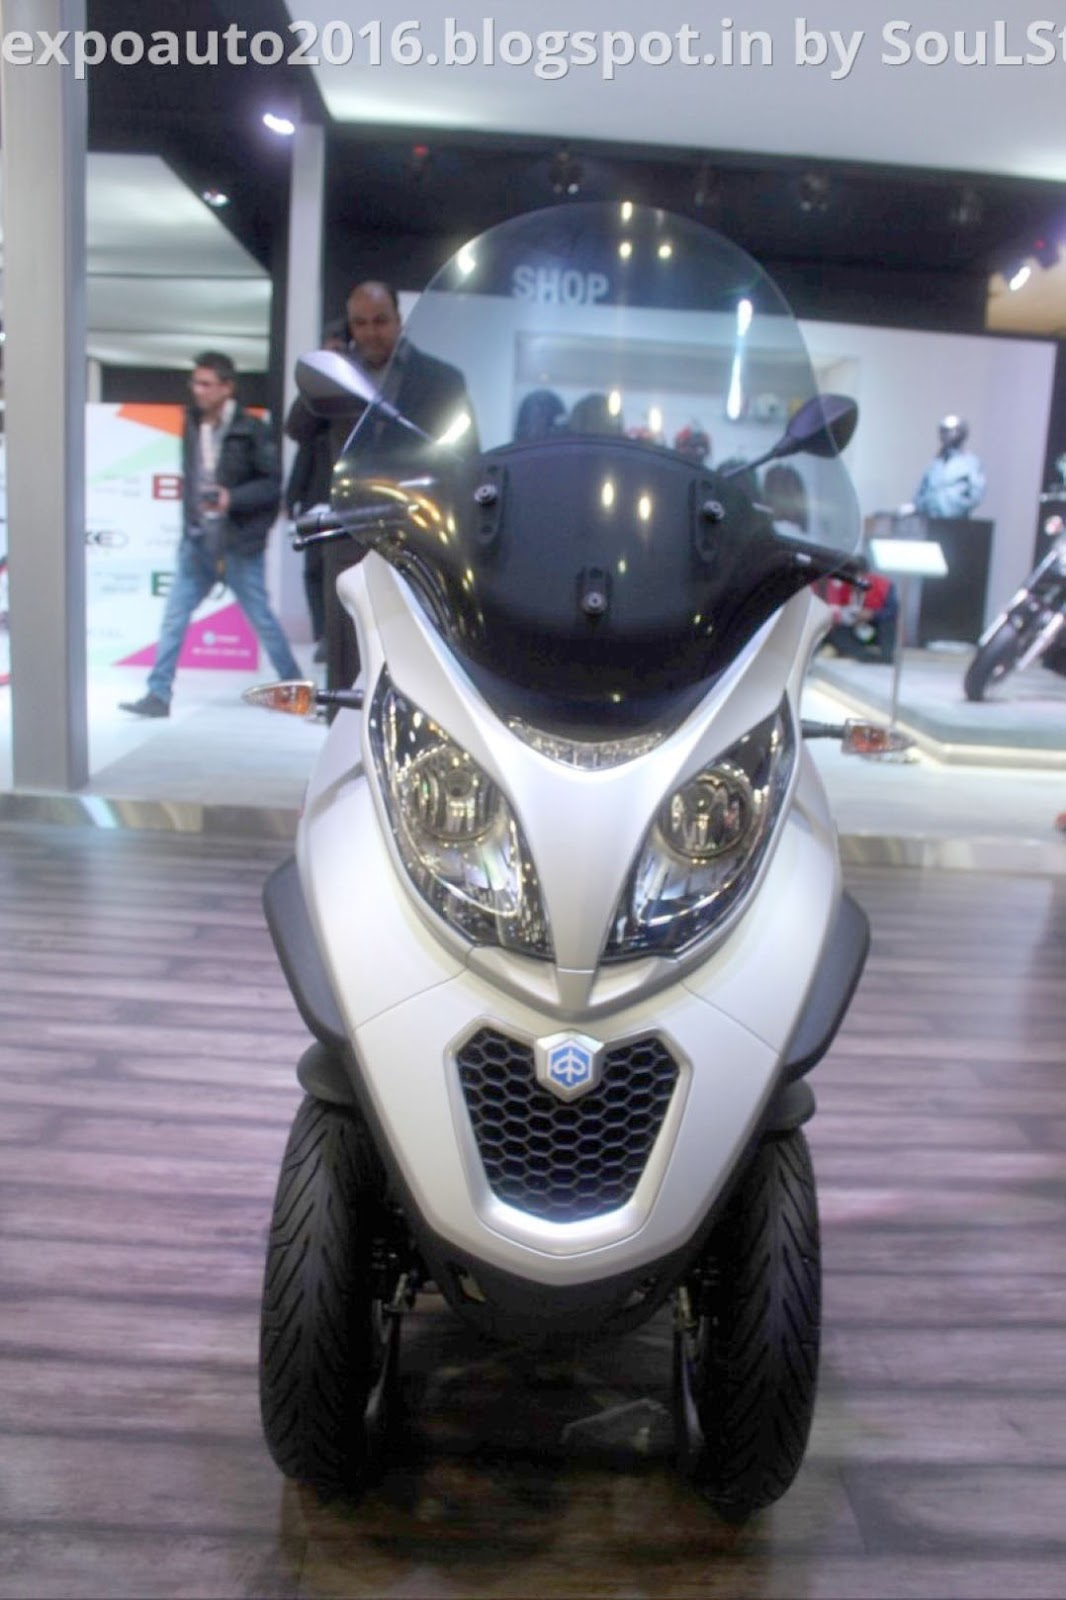 auto expo 2016 by soulsteer piaggio mp3 300 lt sport abs tilting three wheeled scooter on. Black Bedroom Furniture Sets. Home Design Ideas